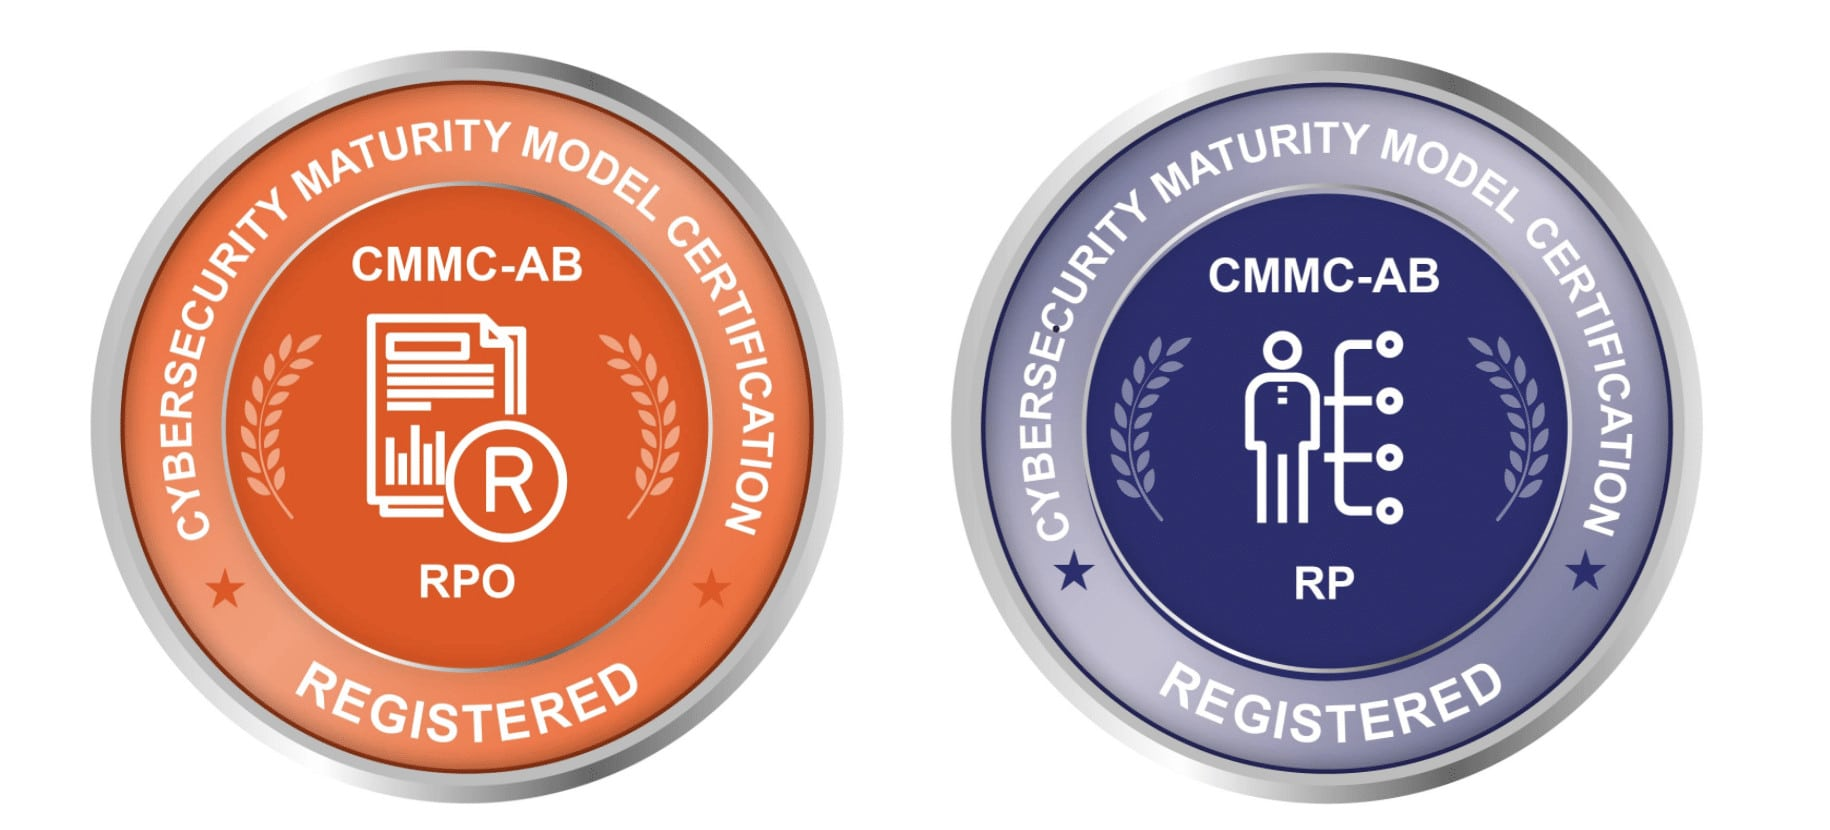 Advantage Industries Is Fully Certified To Assist With Your CMMC Compliance